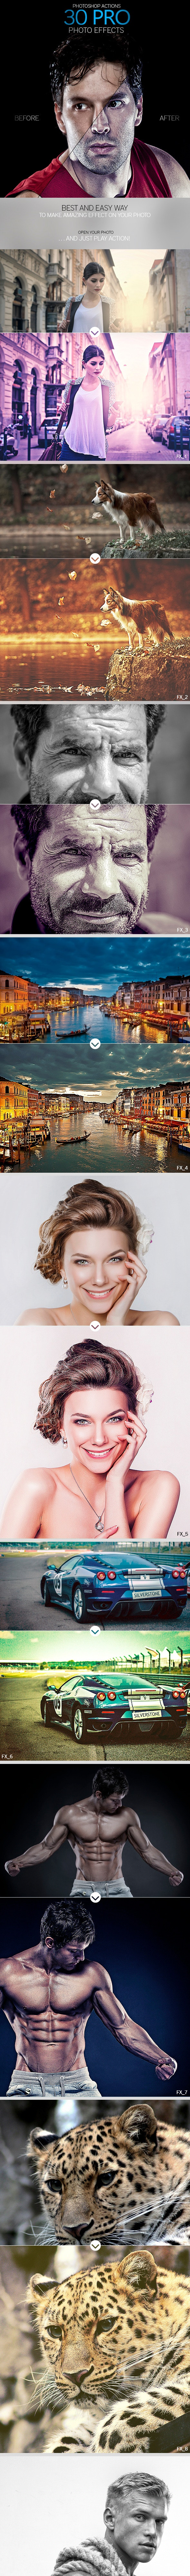 30 Pro Photo Effects - Photo Effects Actions